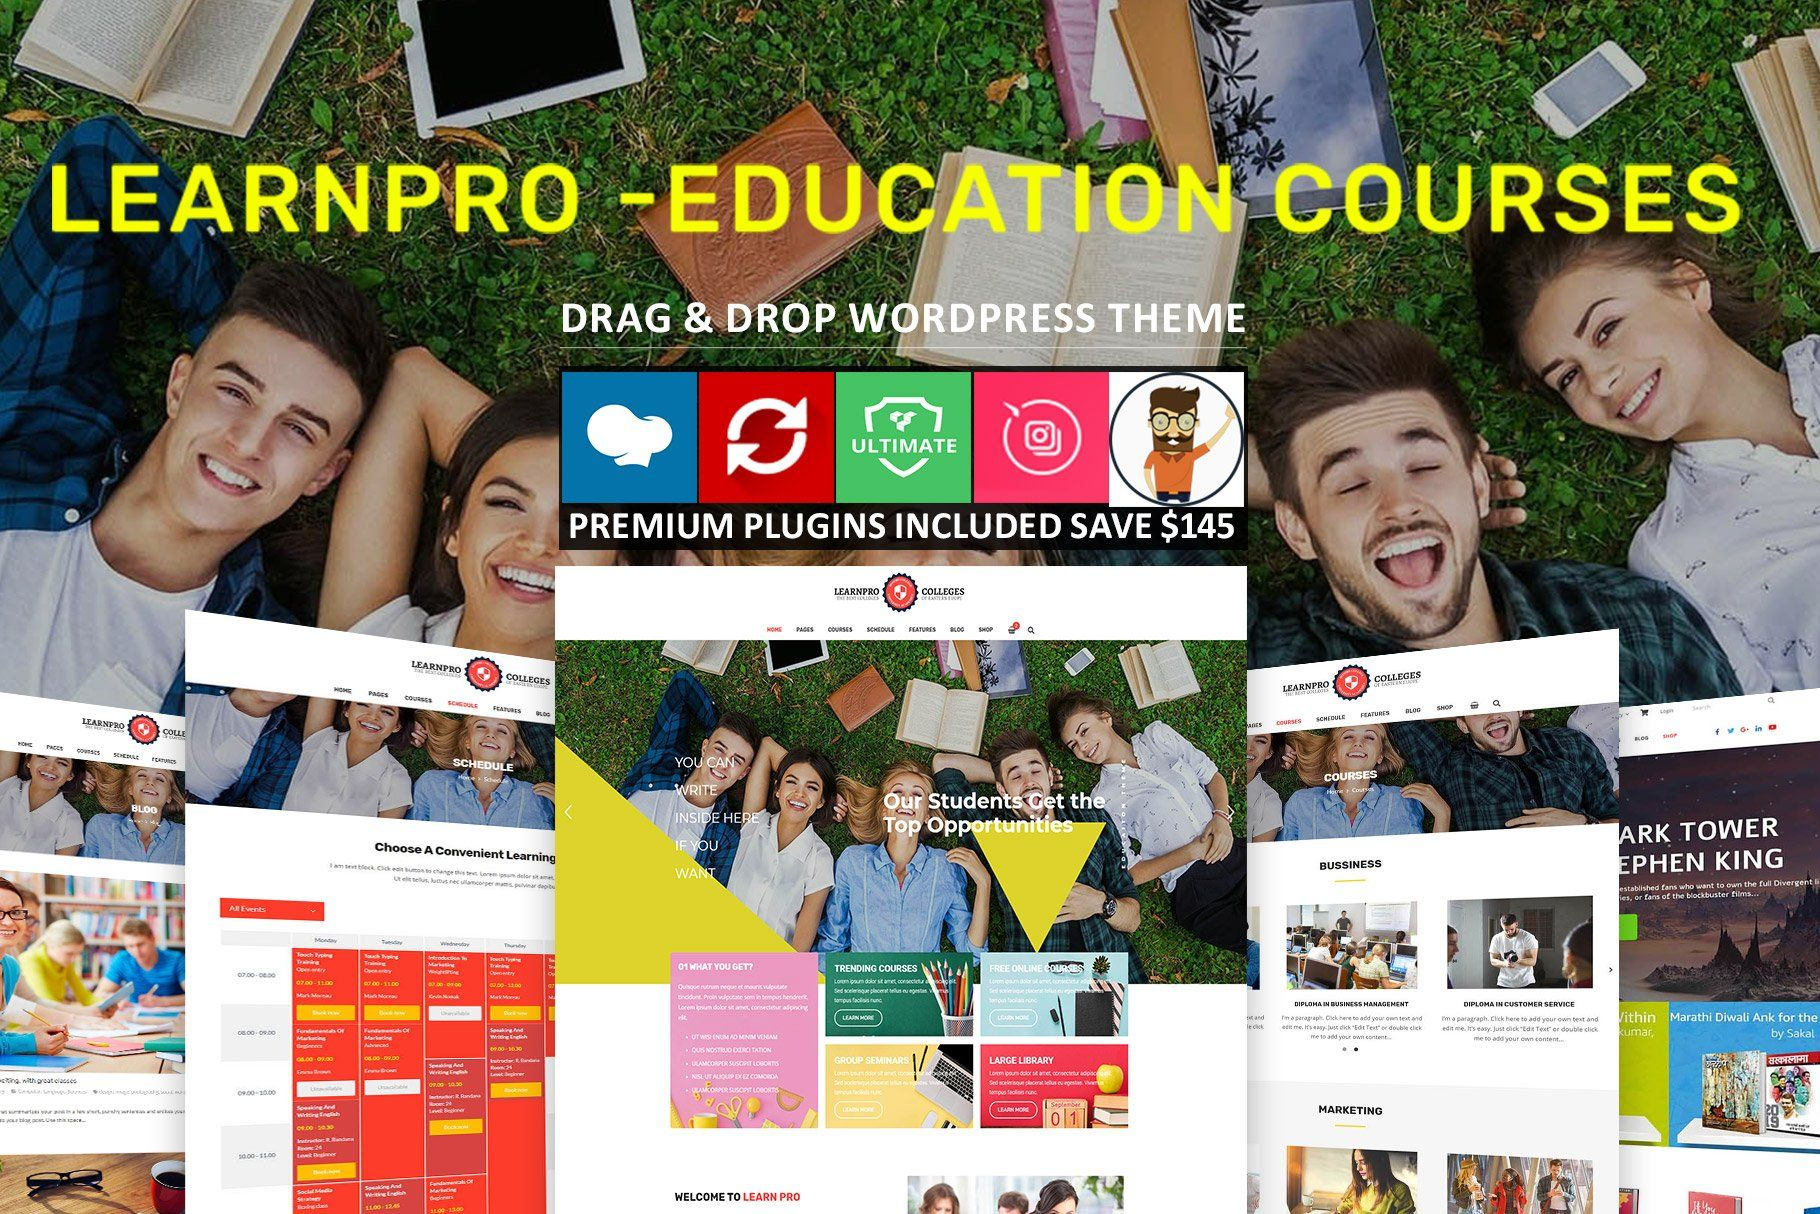 Learnpro Education Courses Theme Education Theme Learnpro Ad